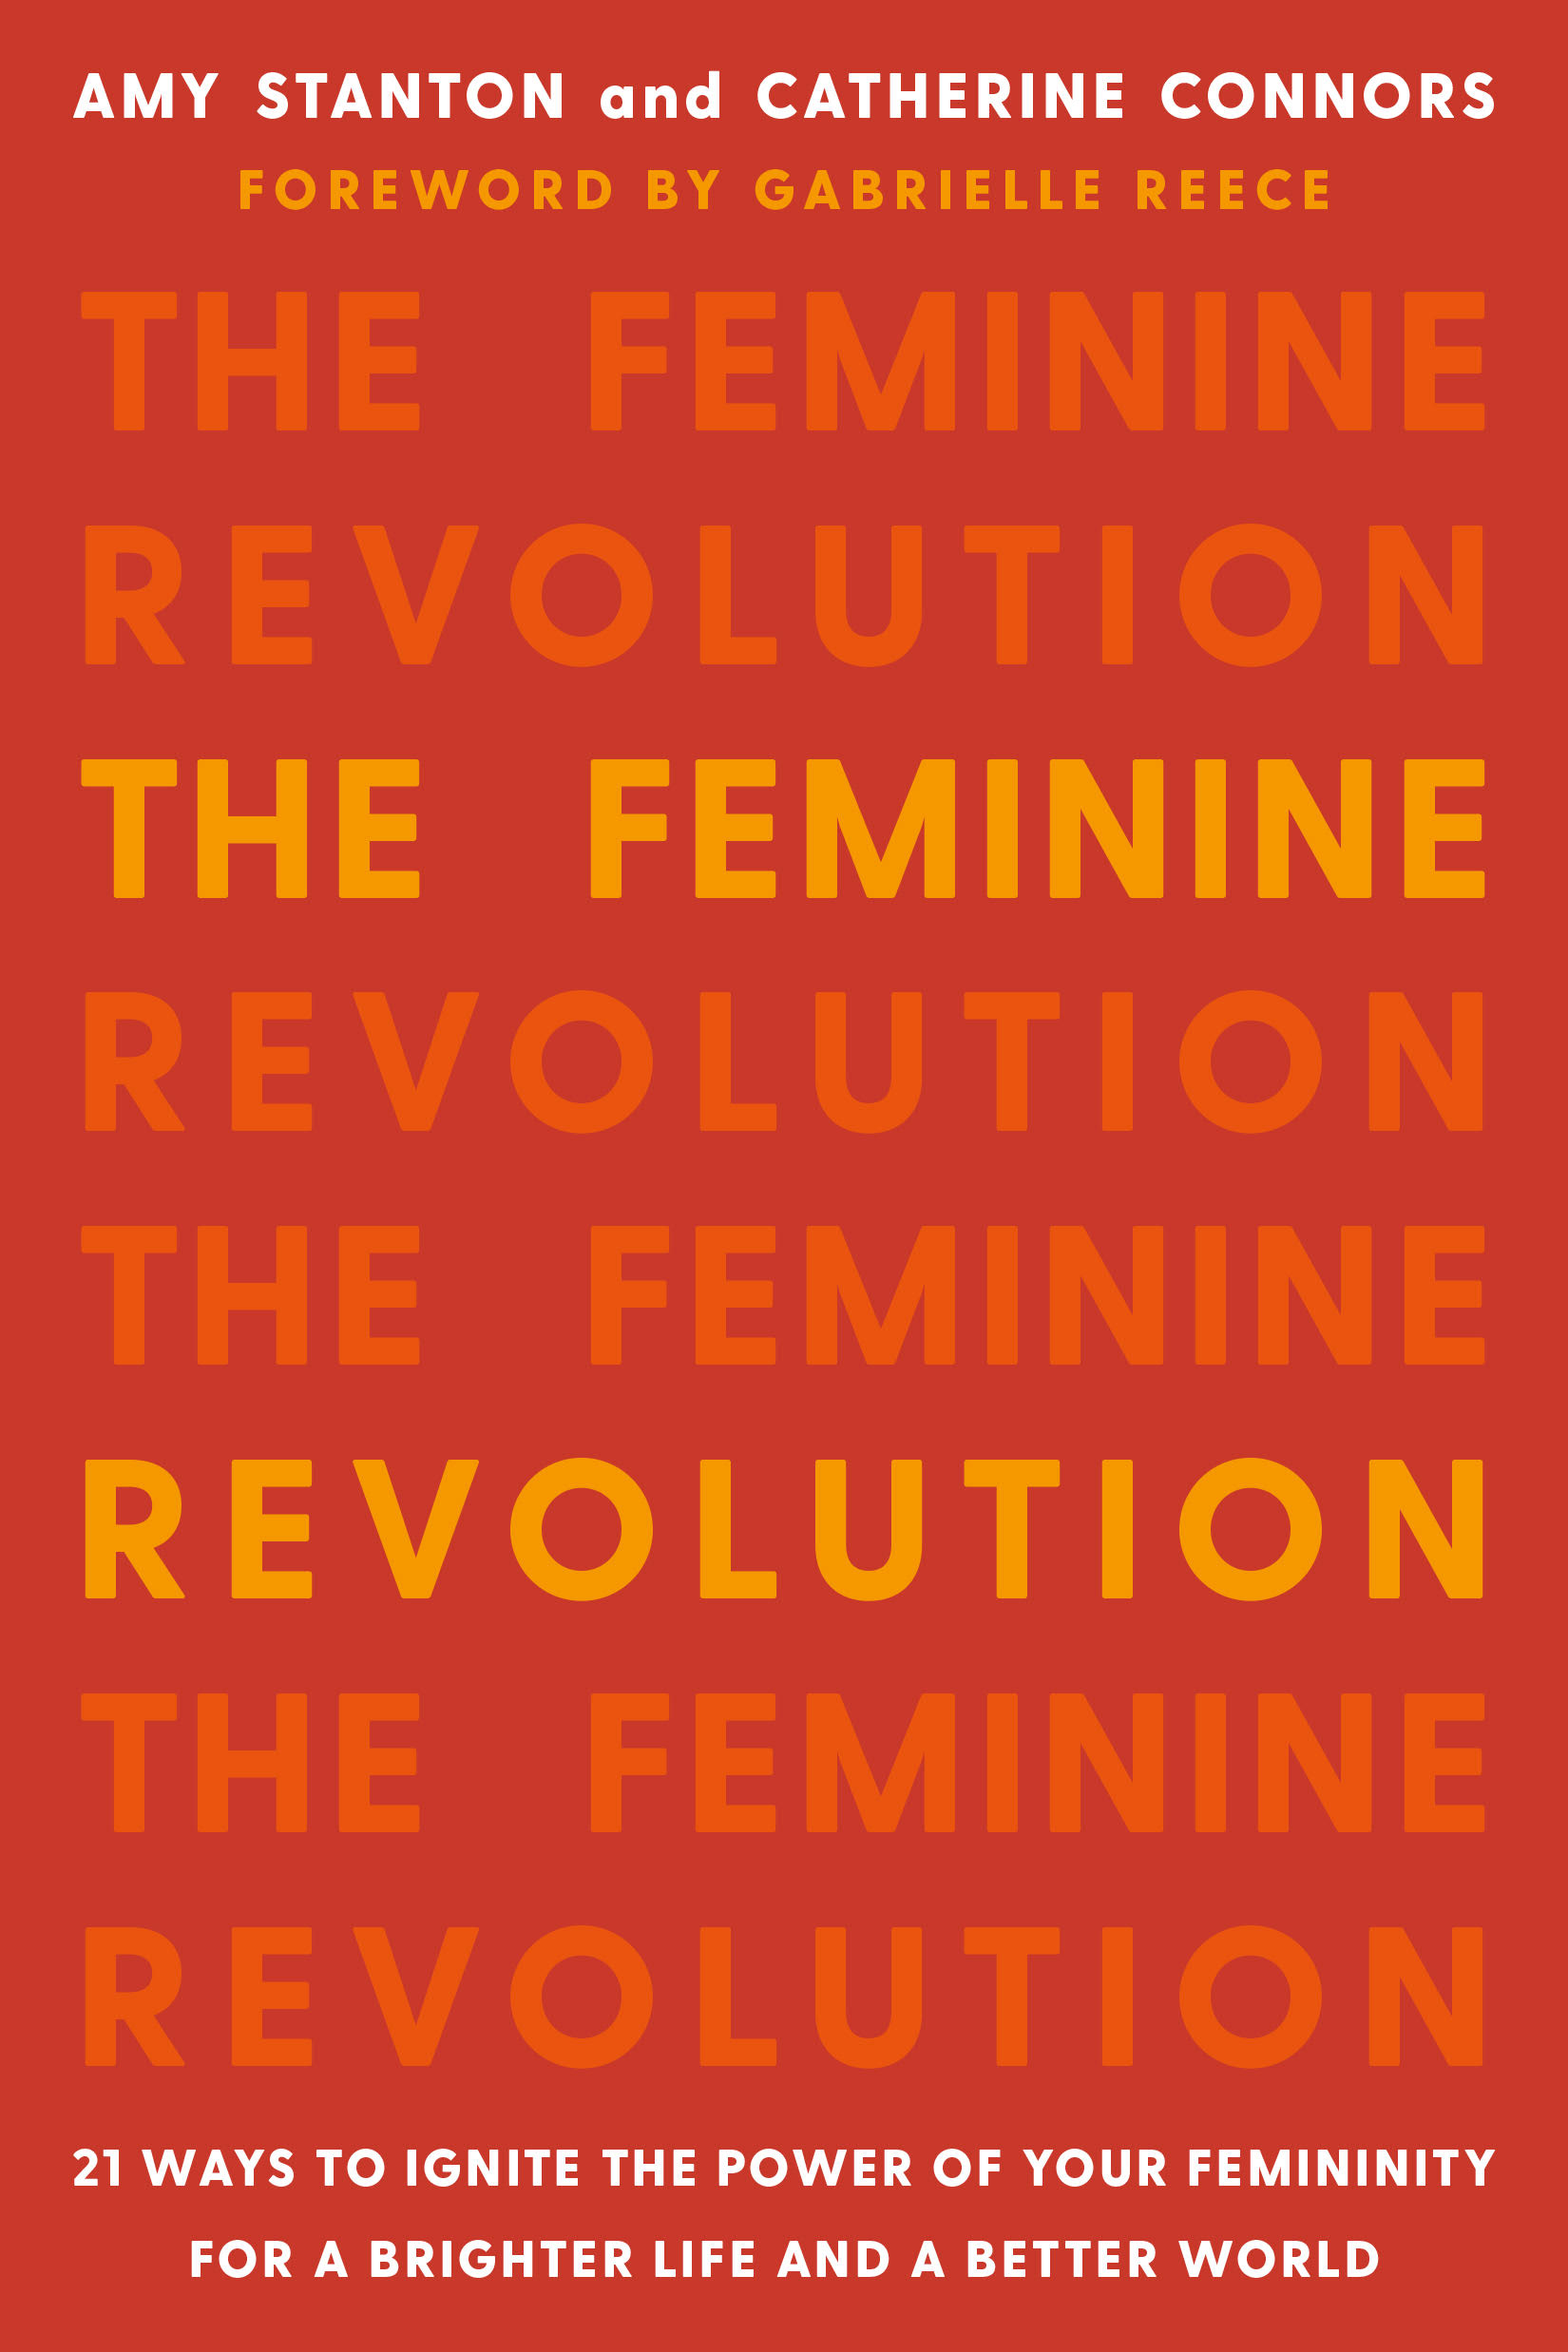 fem rev book - homepage.jpg